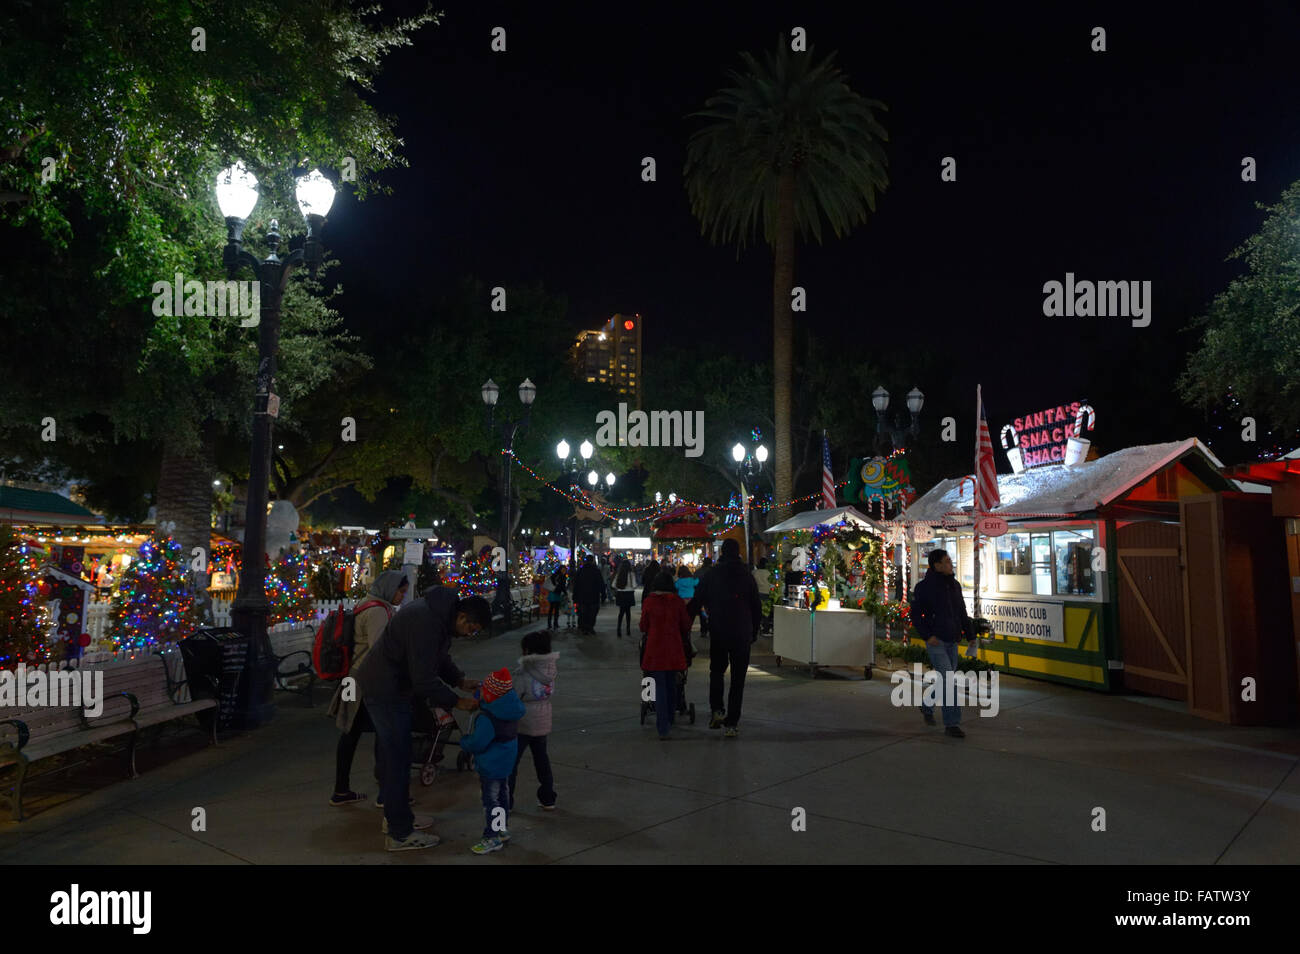 Christmas In The Park San Jose.Christmas In The Park San Jose Ca Stock Photo 92744959 Alamy